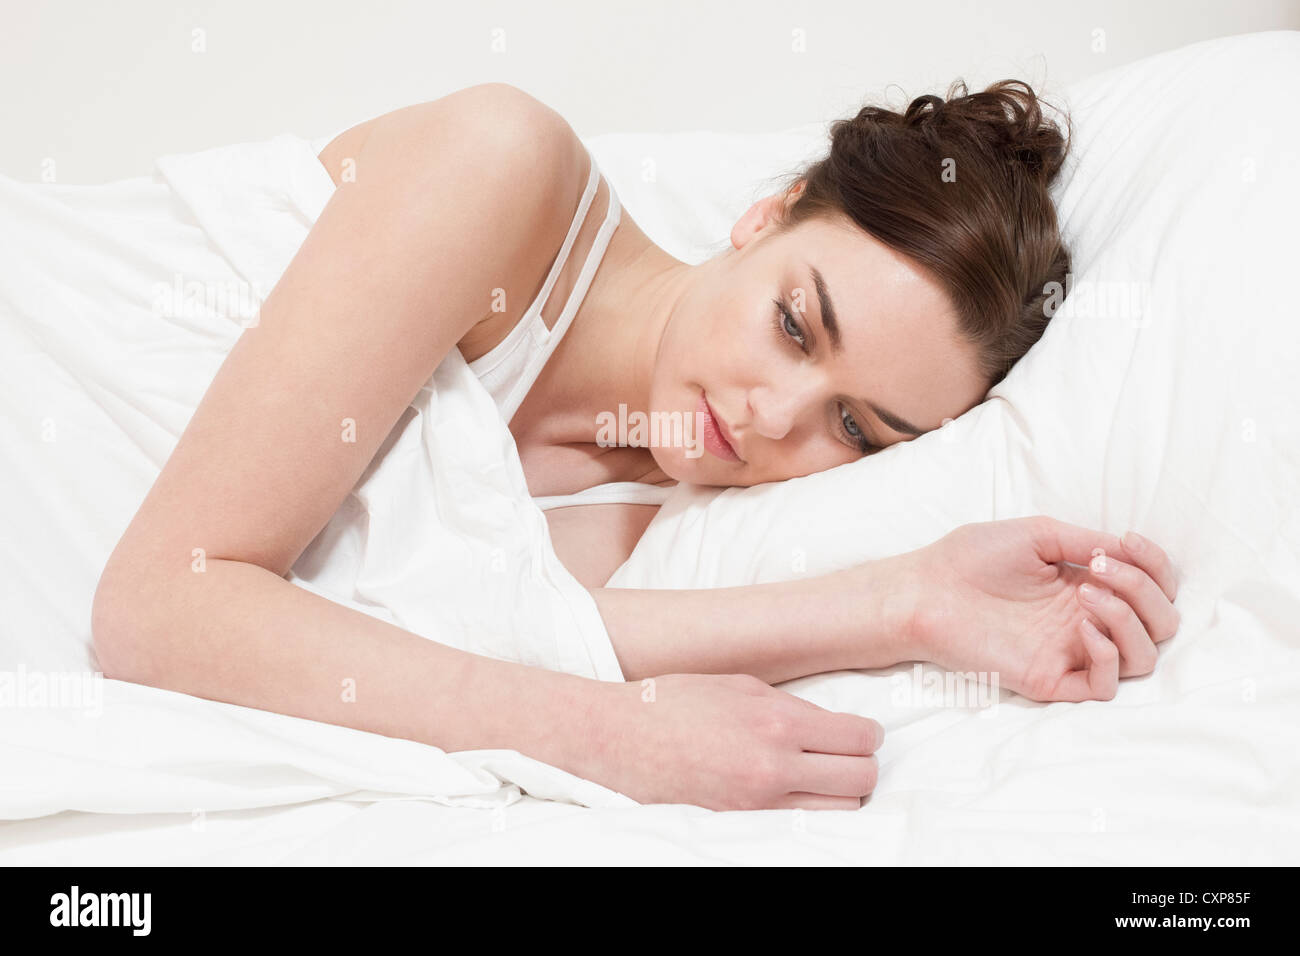 Woman Lying in Bed awake Photo Stock